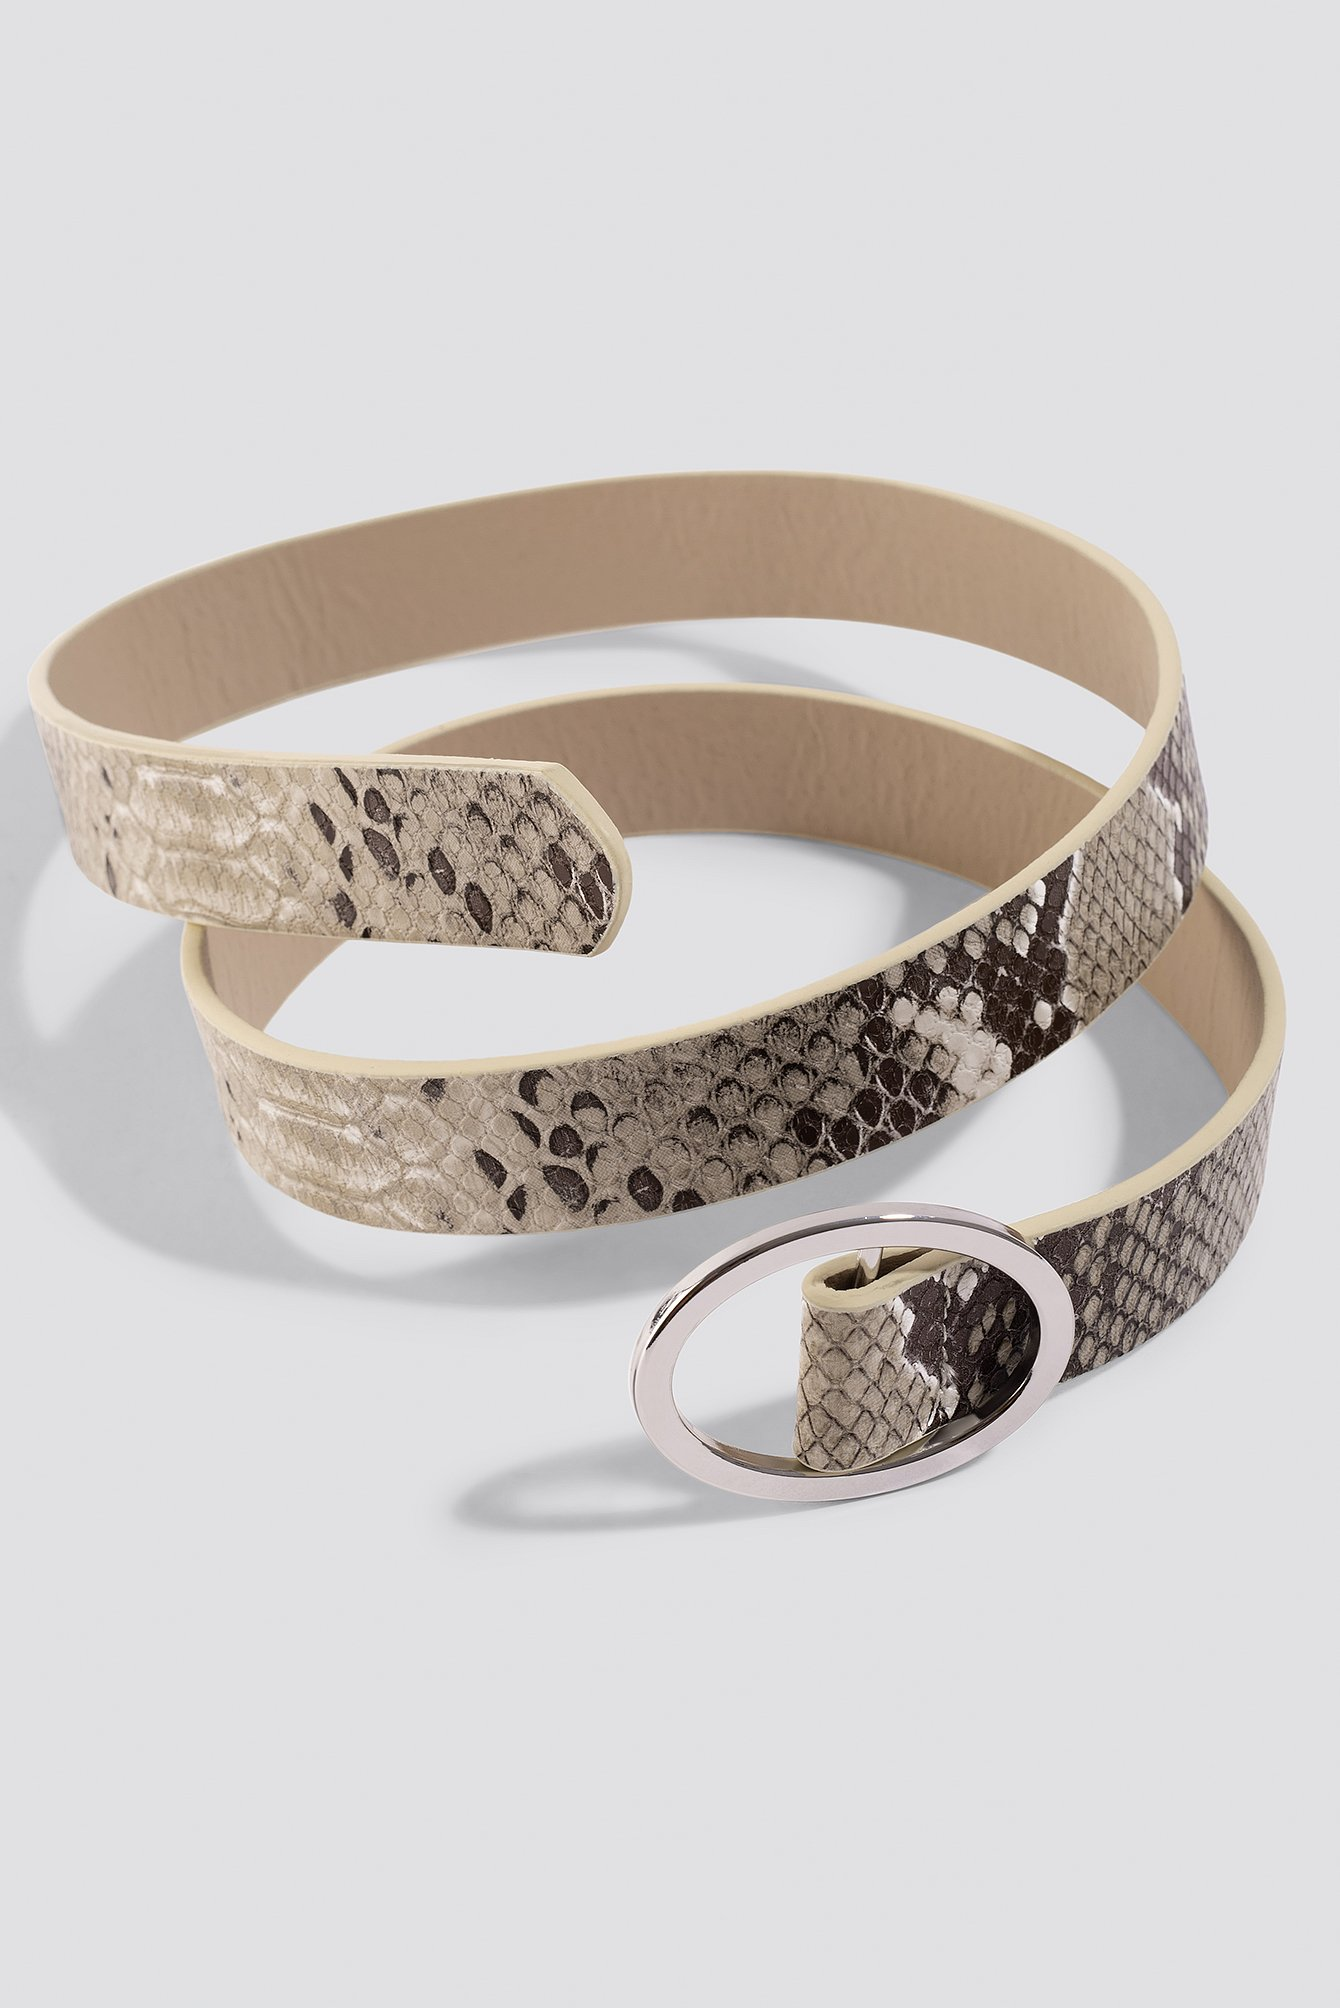 na-kd accessories -  Slim Snake Belt - Brown,Grey